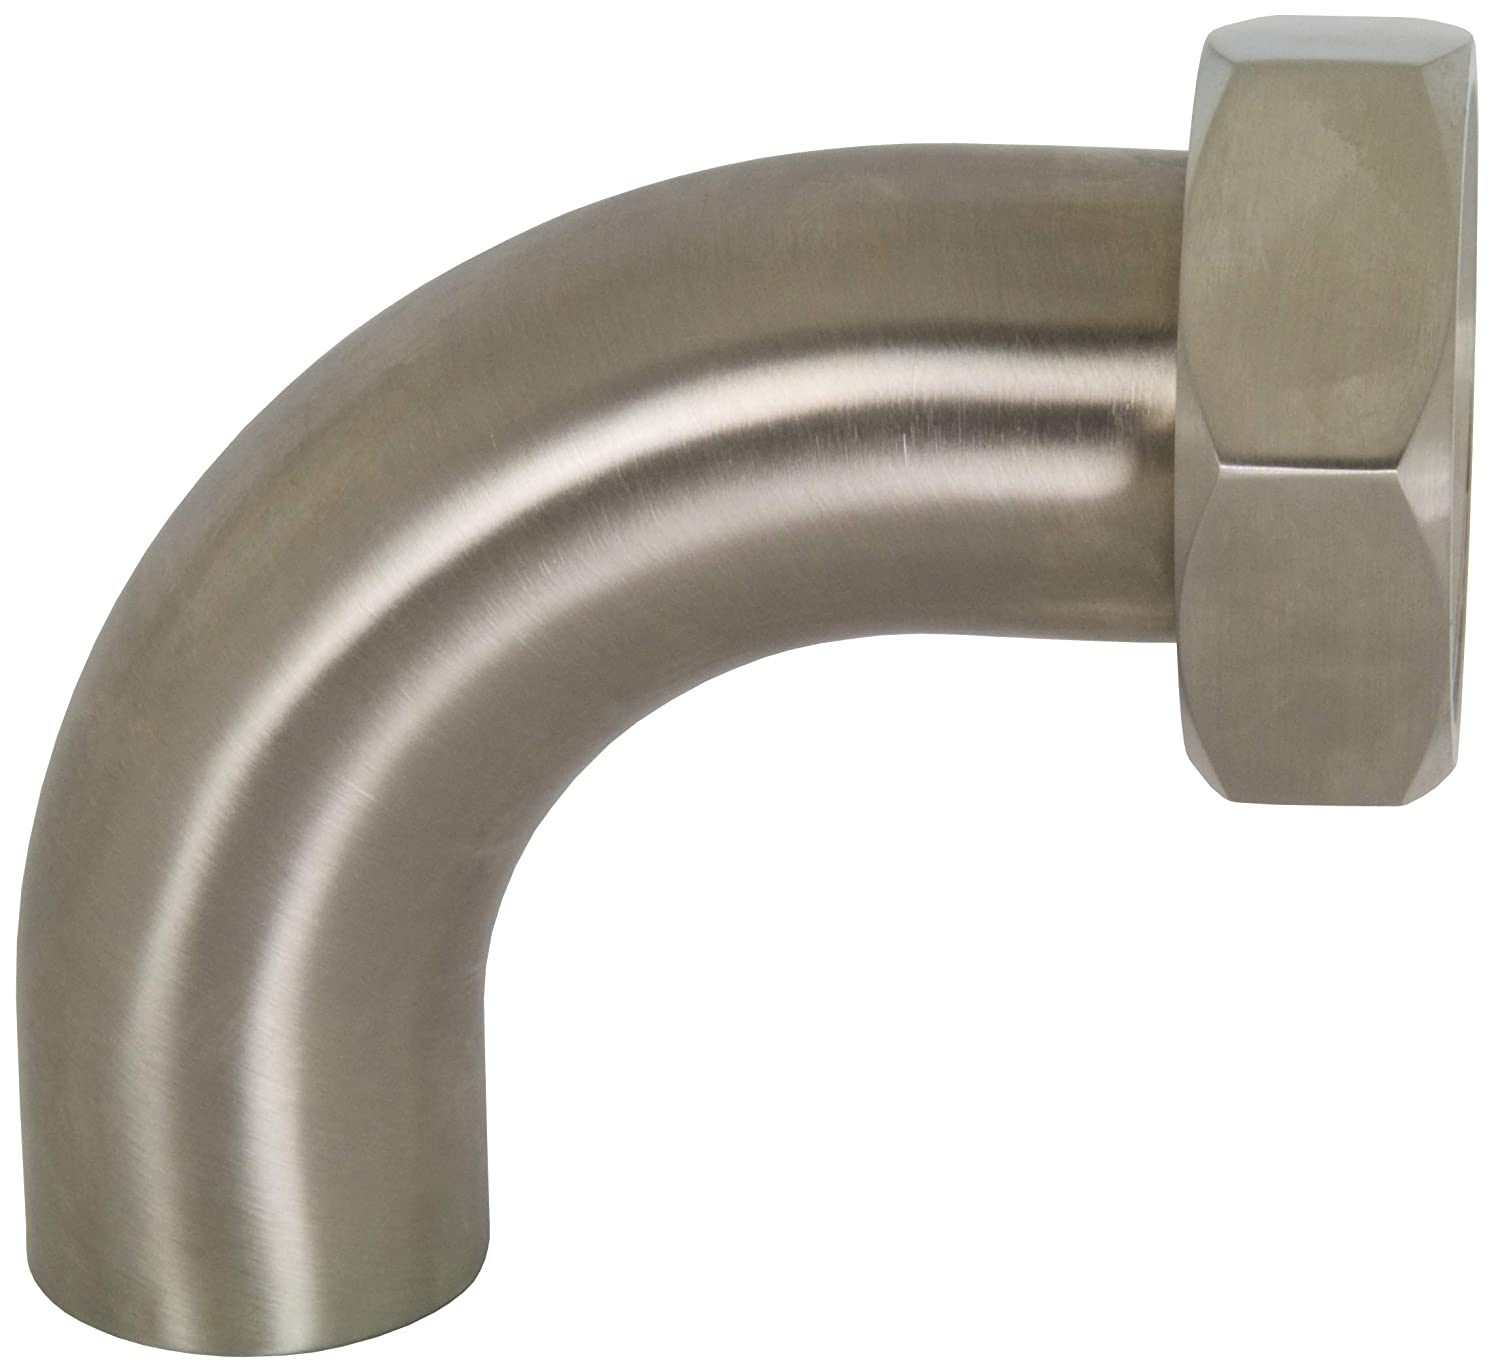 Dixon B2FP-G250 304SS Polished 90 Degree Plain Bevel Seat with Hex Nut 2.5 2.5 Weld Elbow